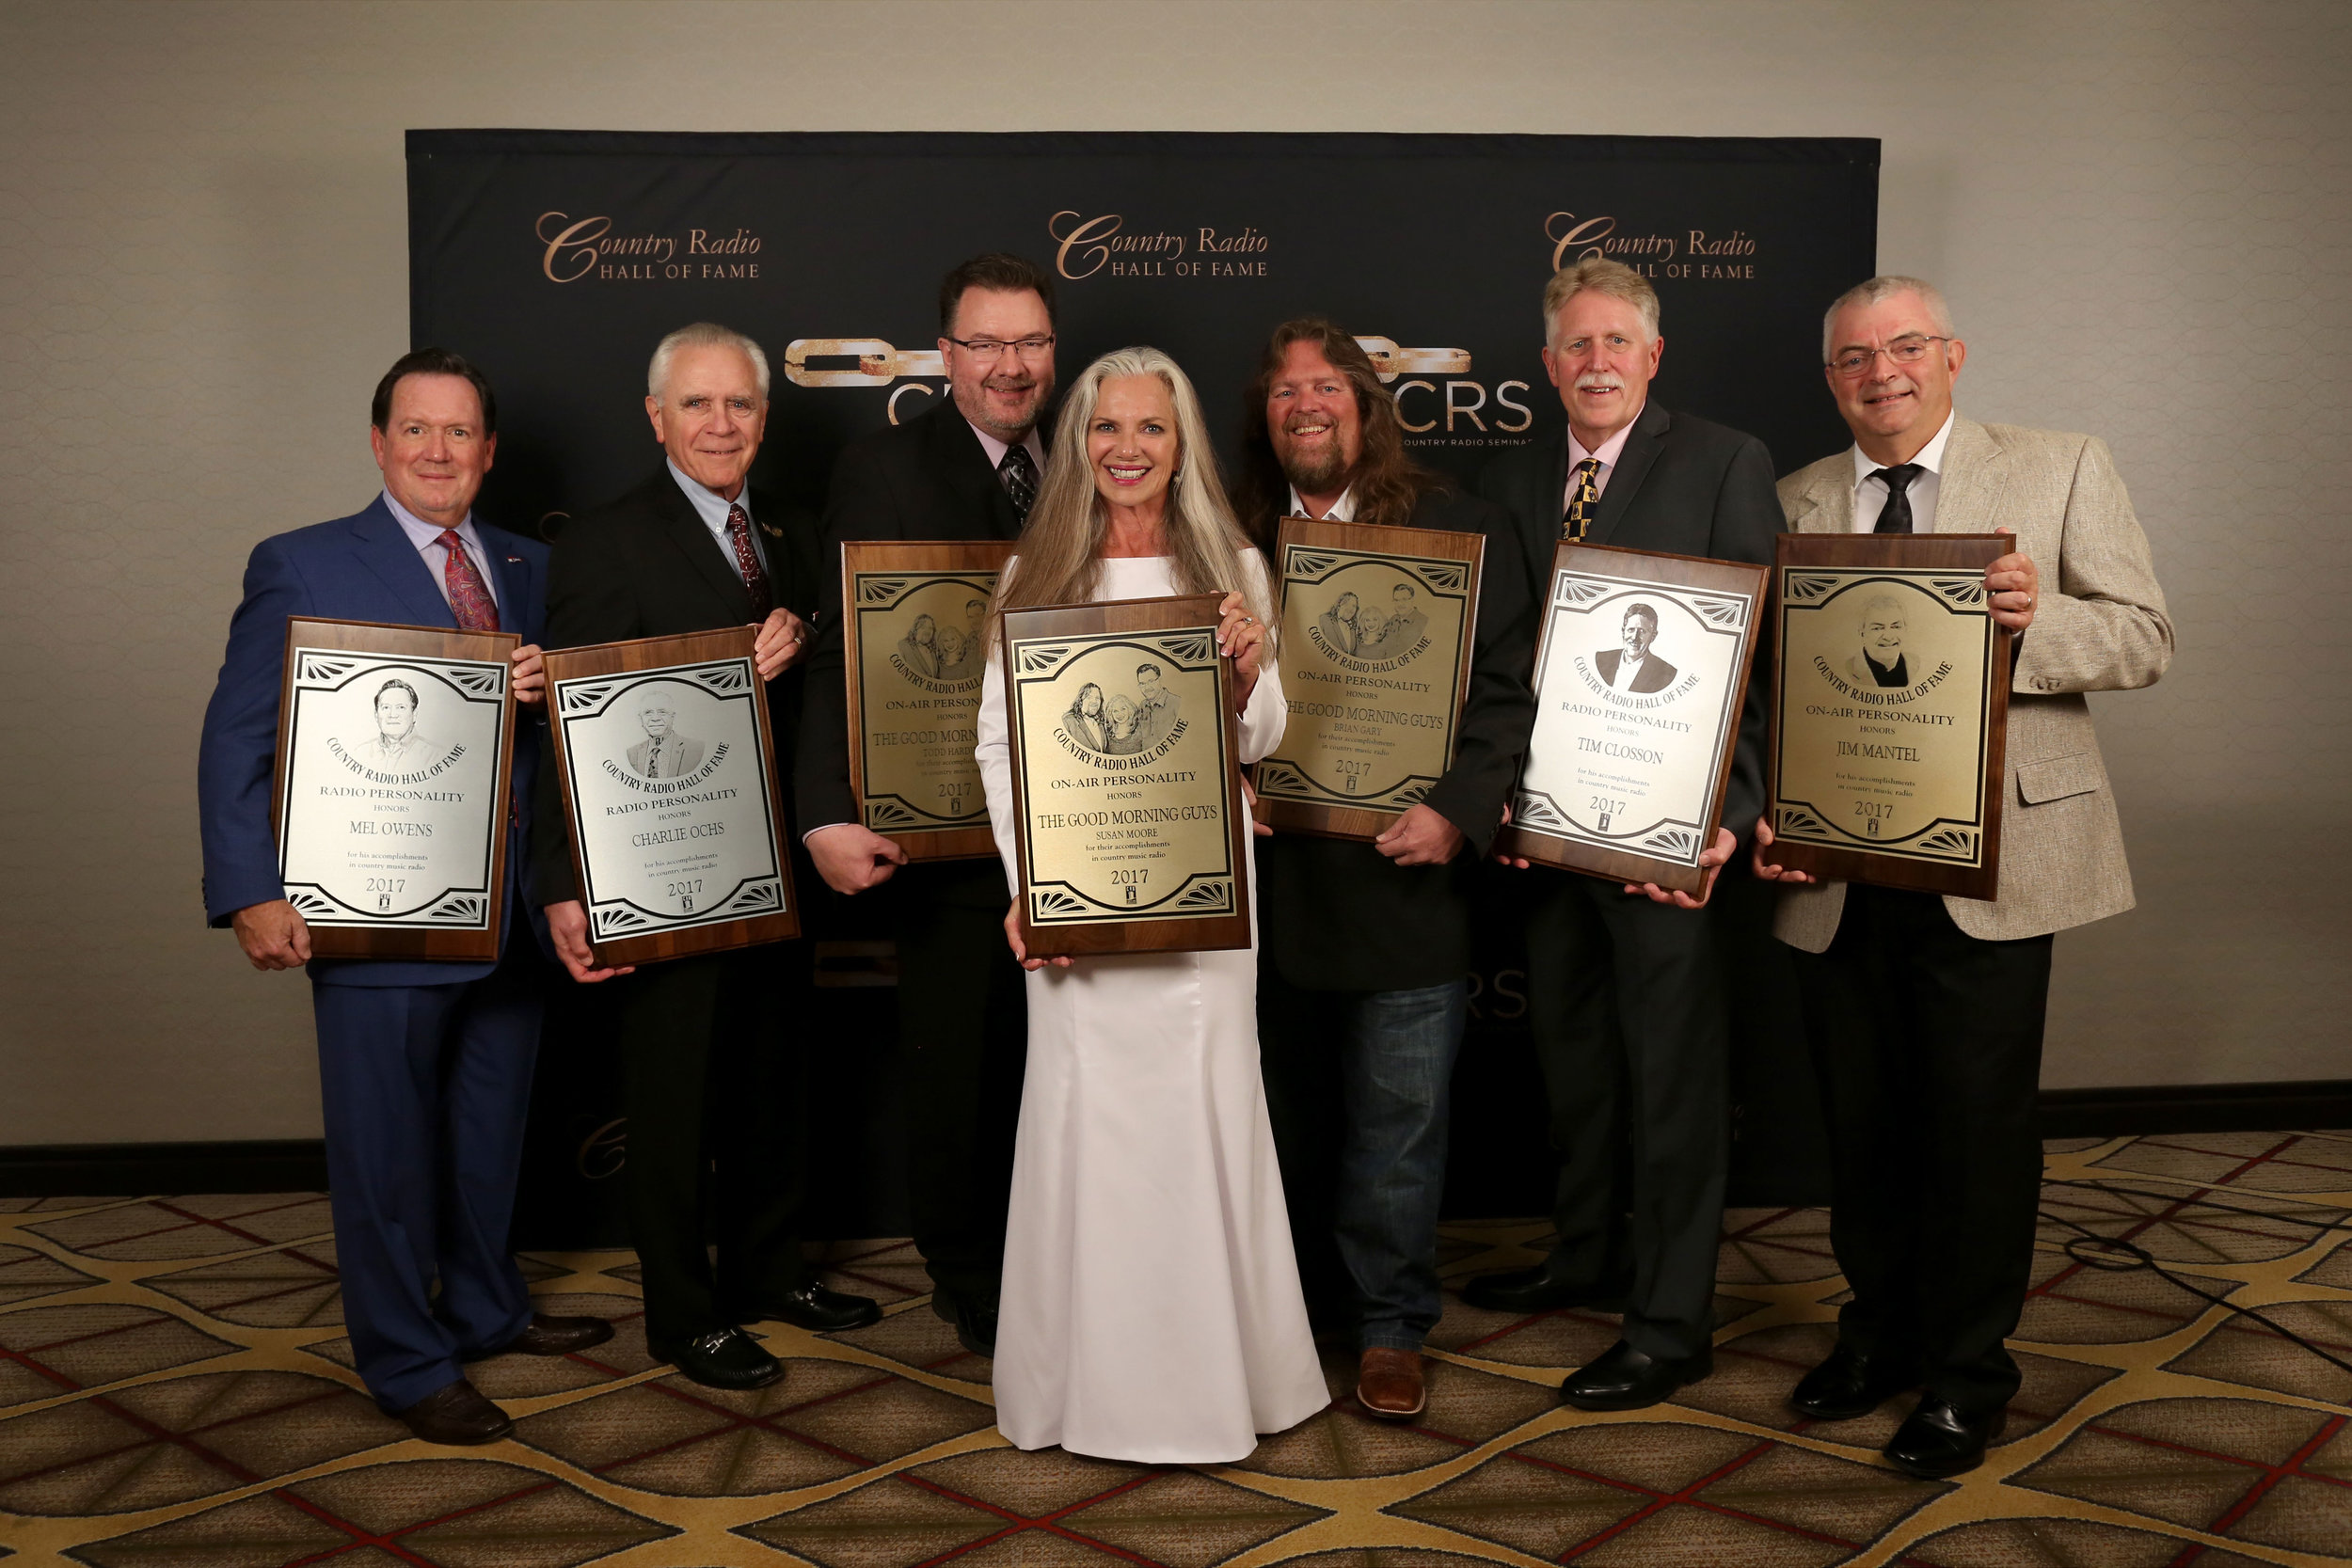 COUNTRY RADIO HALL OF FAME 2017 - June 21, 2017